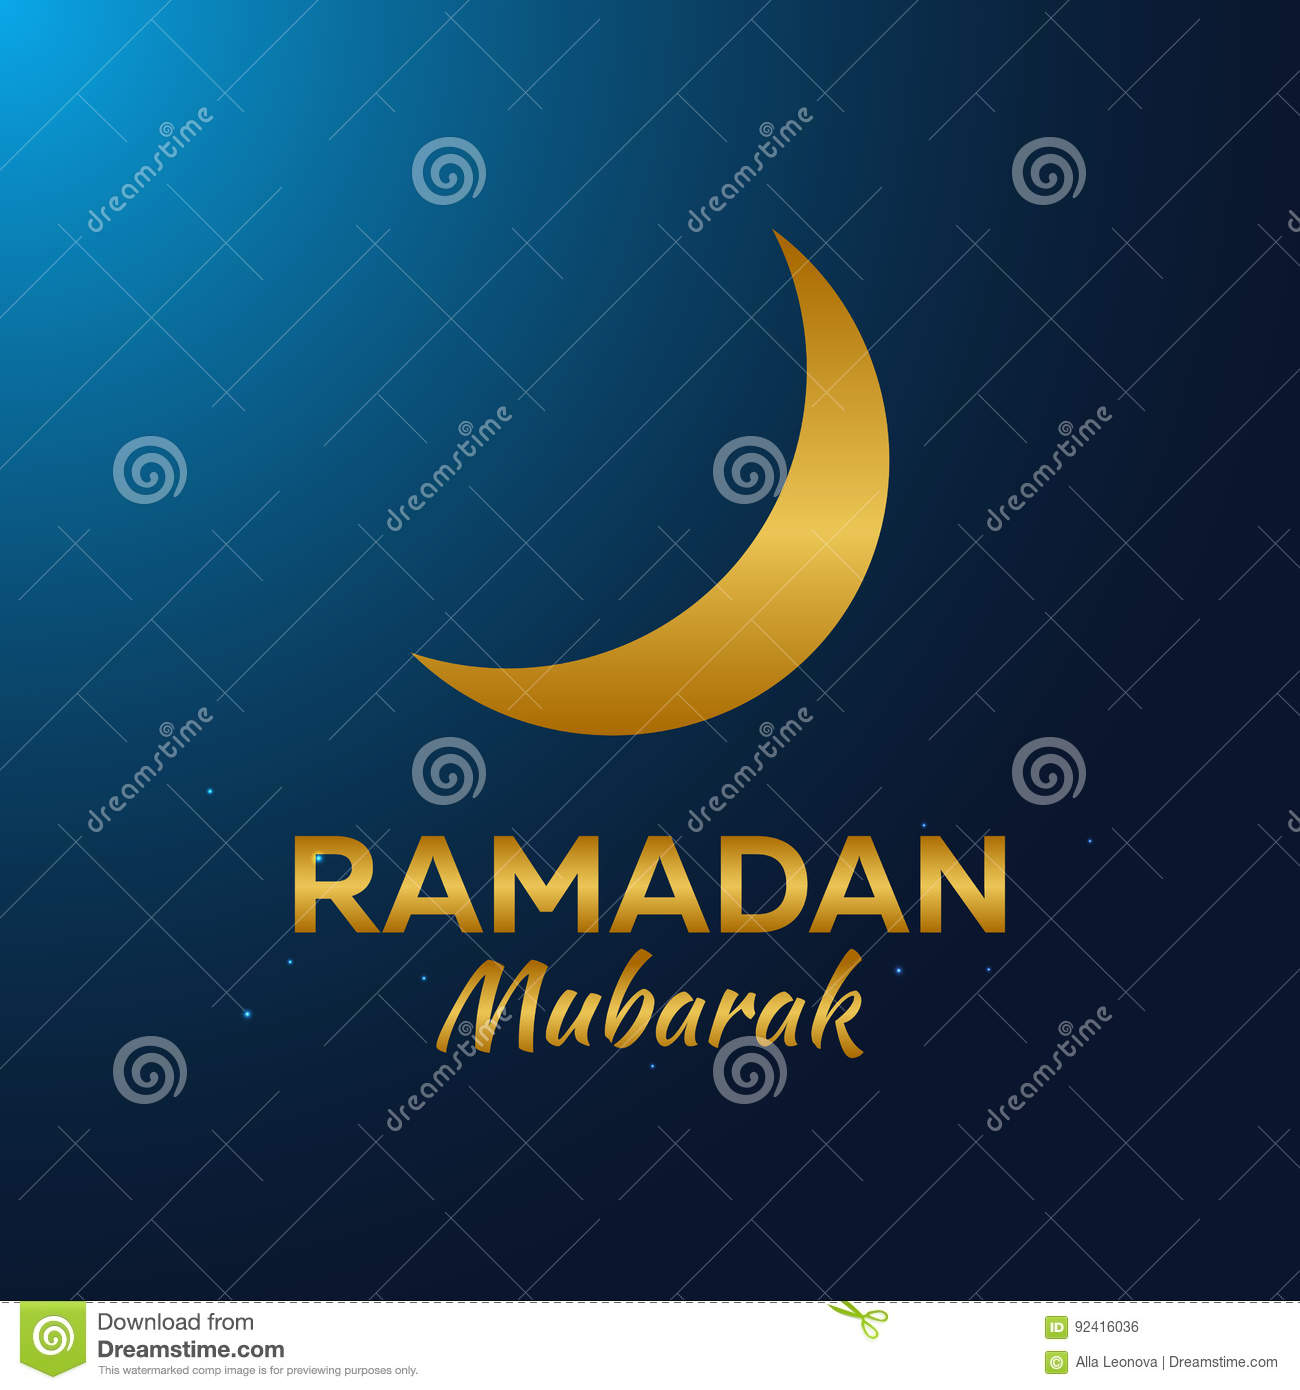 Ramadan Kareem Ramadan Mubarak Greeting Card Arabian Night With